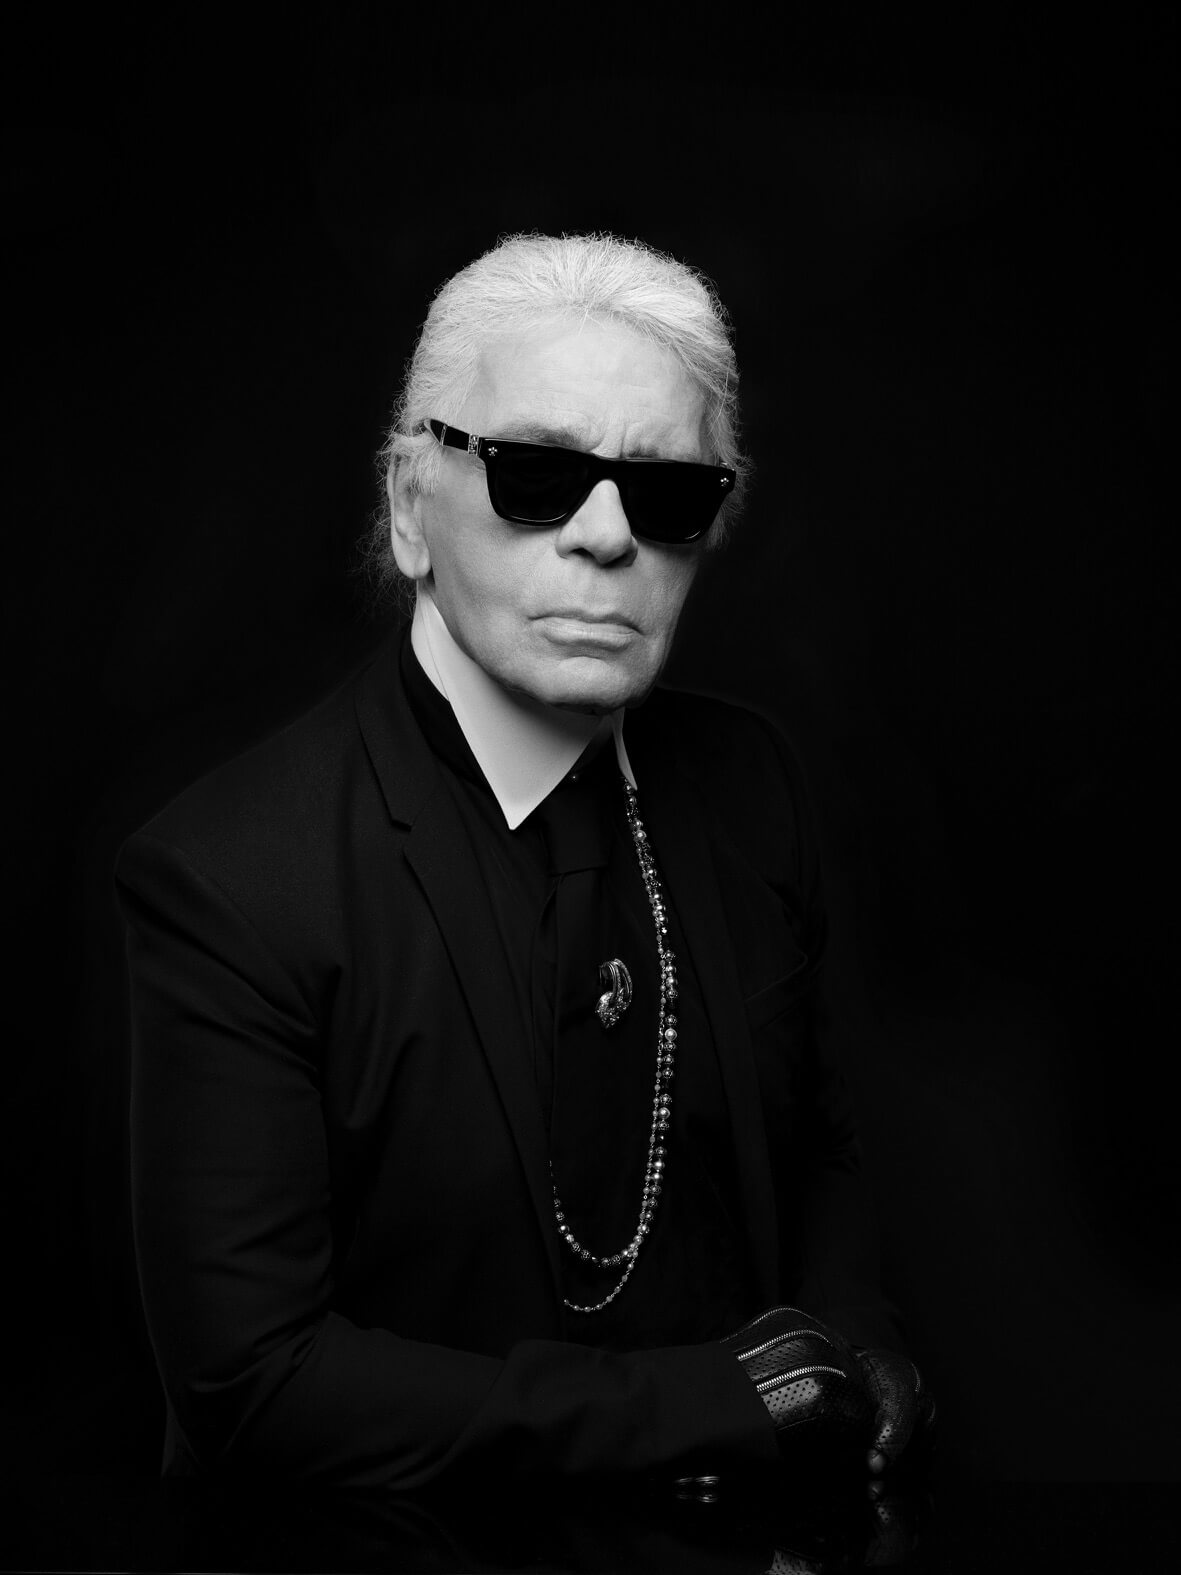 Karl Lagerfeld, self portrait.